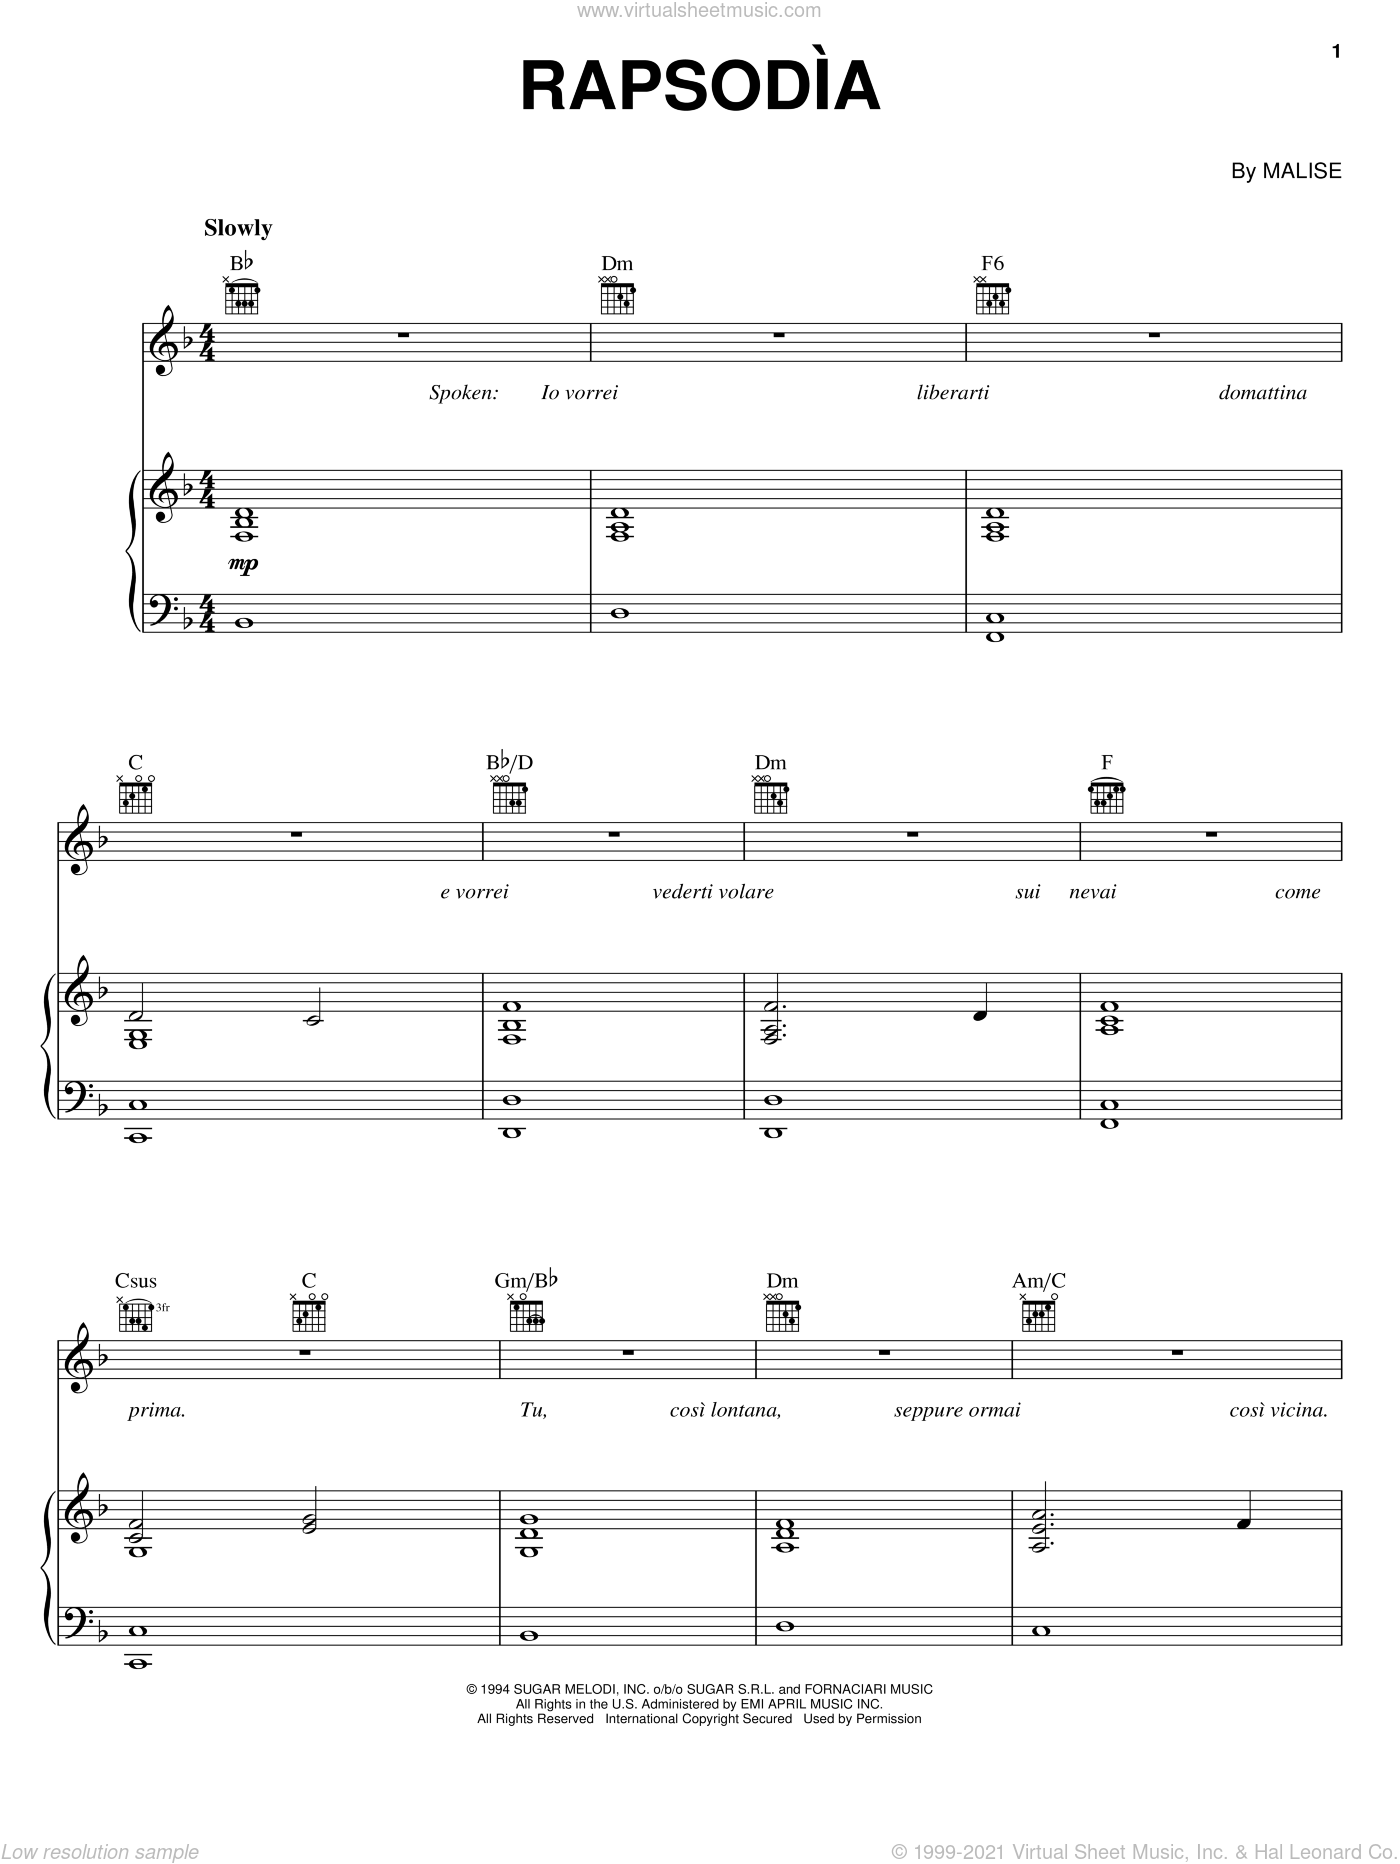 Rapsodia sheet music for voice, piano or guitar by Malise